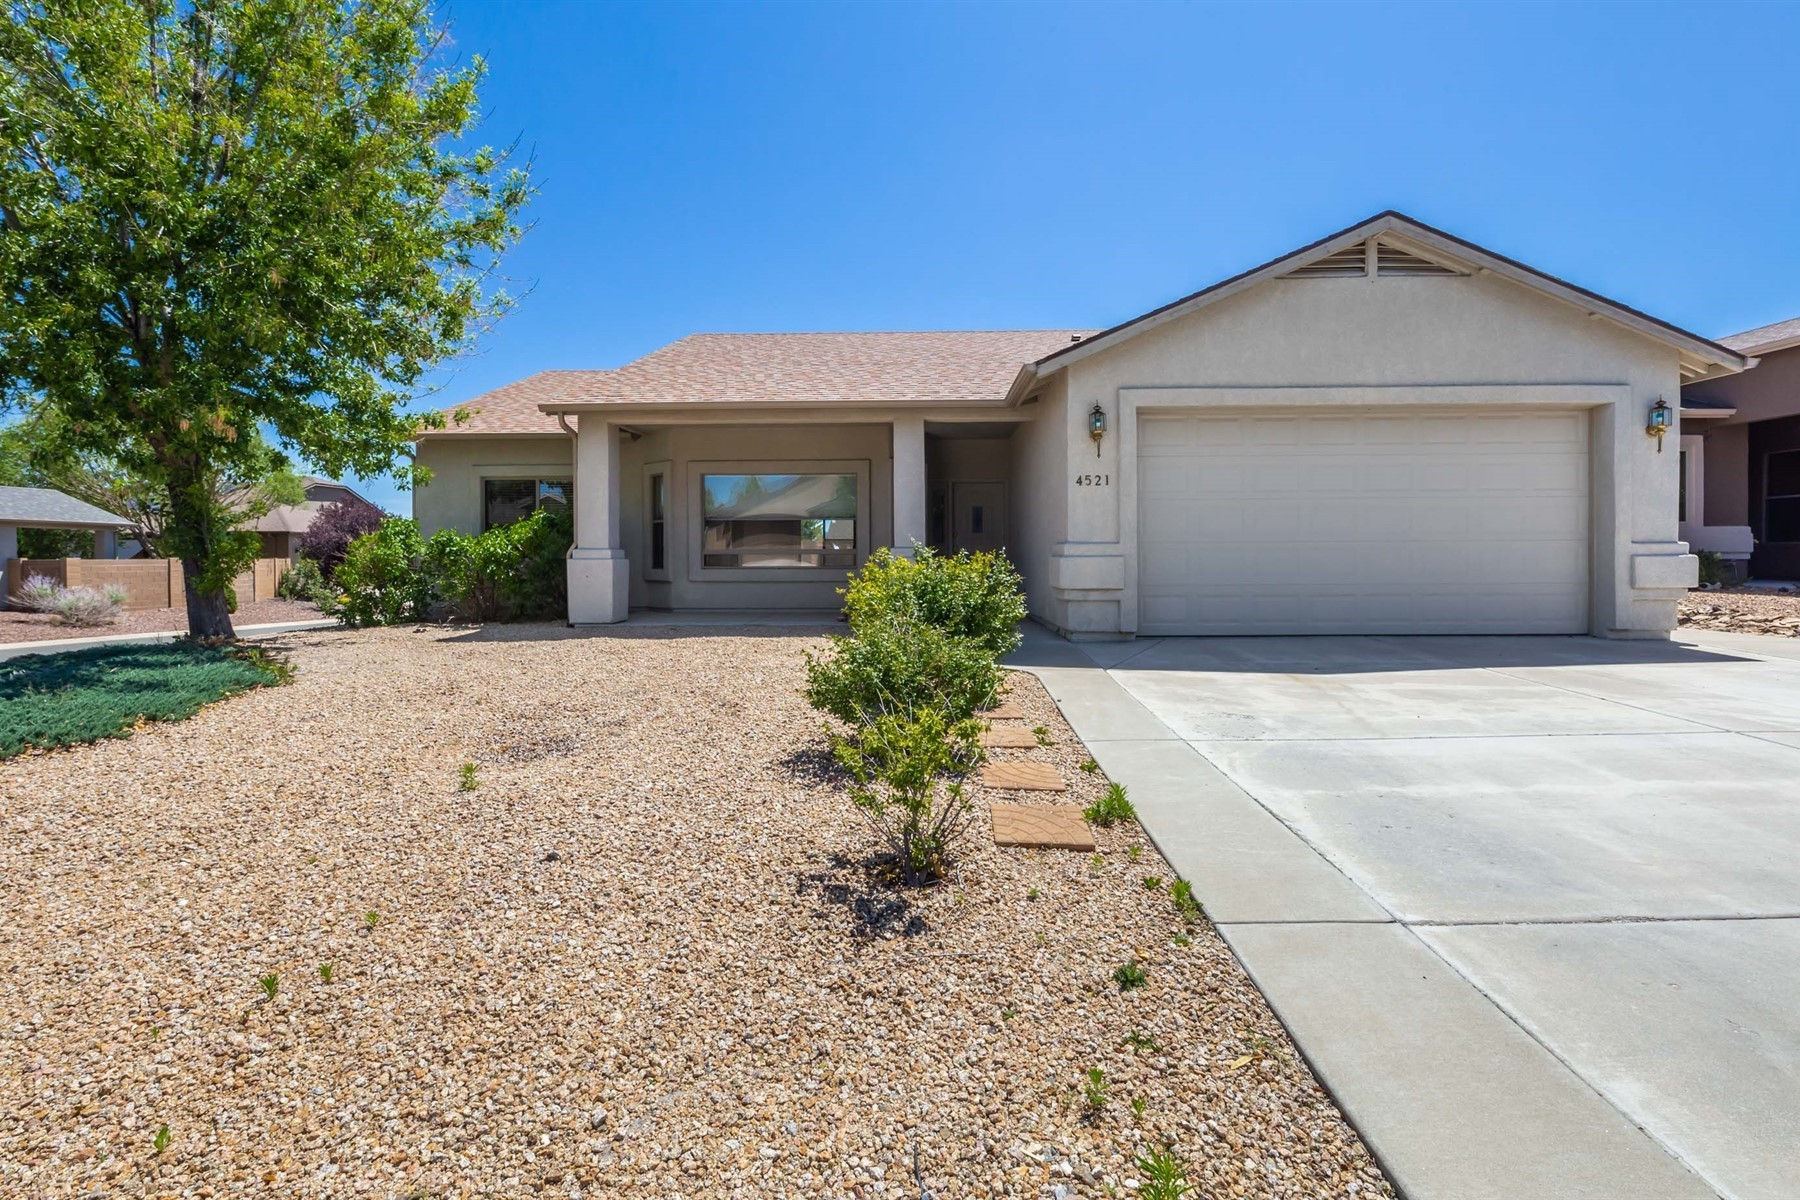 Single Family Homes for Sale at Charming Prescott Valley Home 4521 N Reston Place Prescott Valley, Arizona 86314 United States